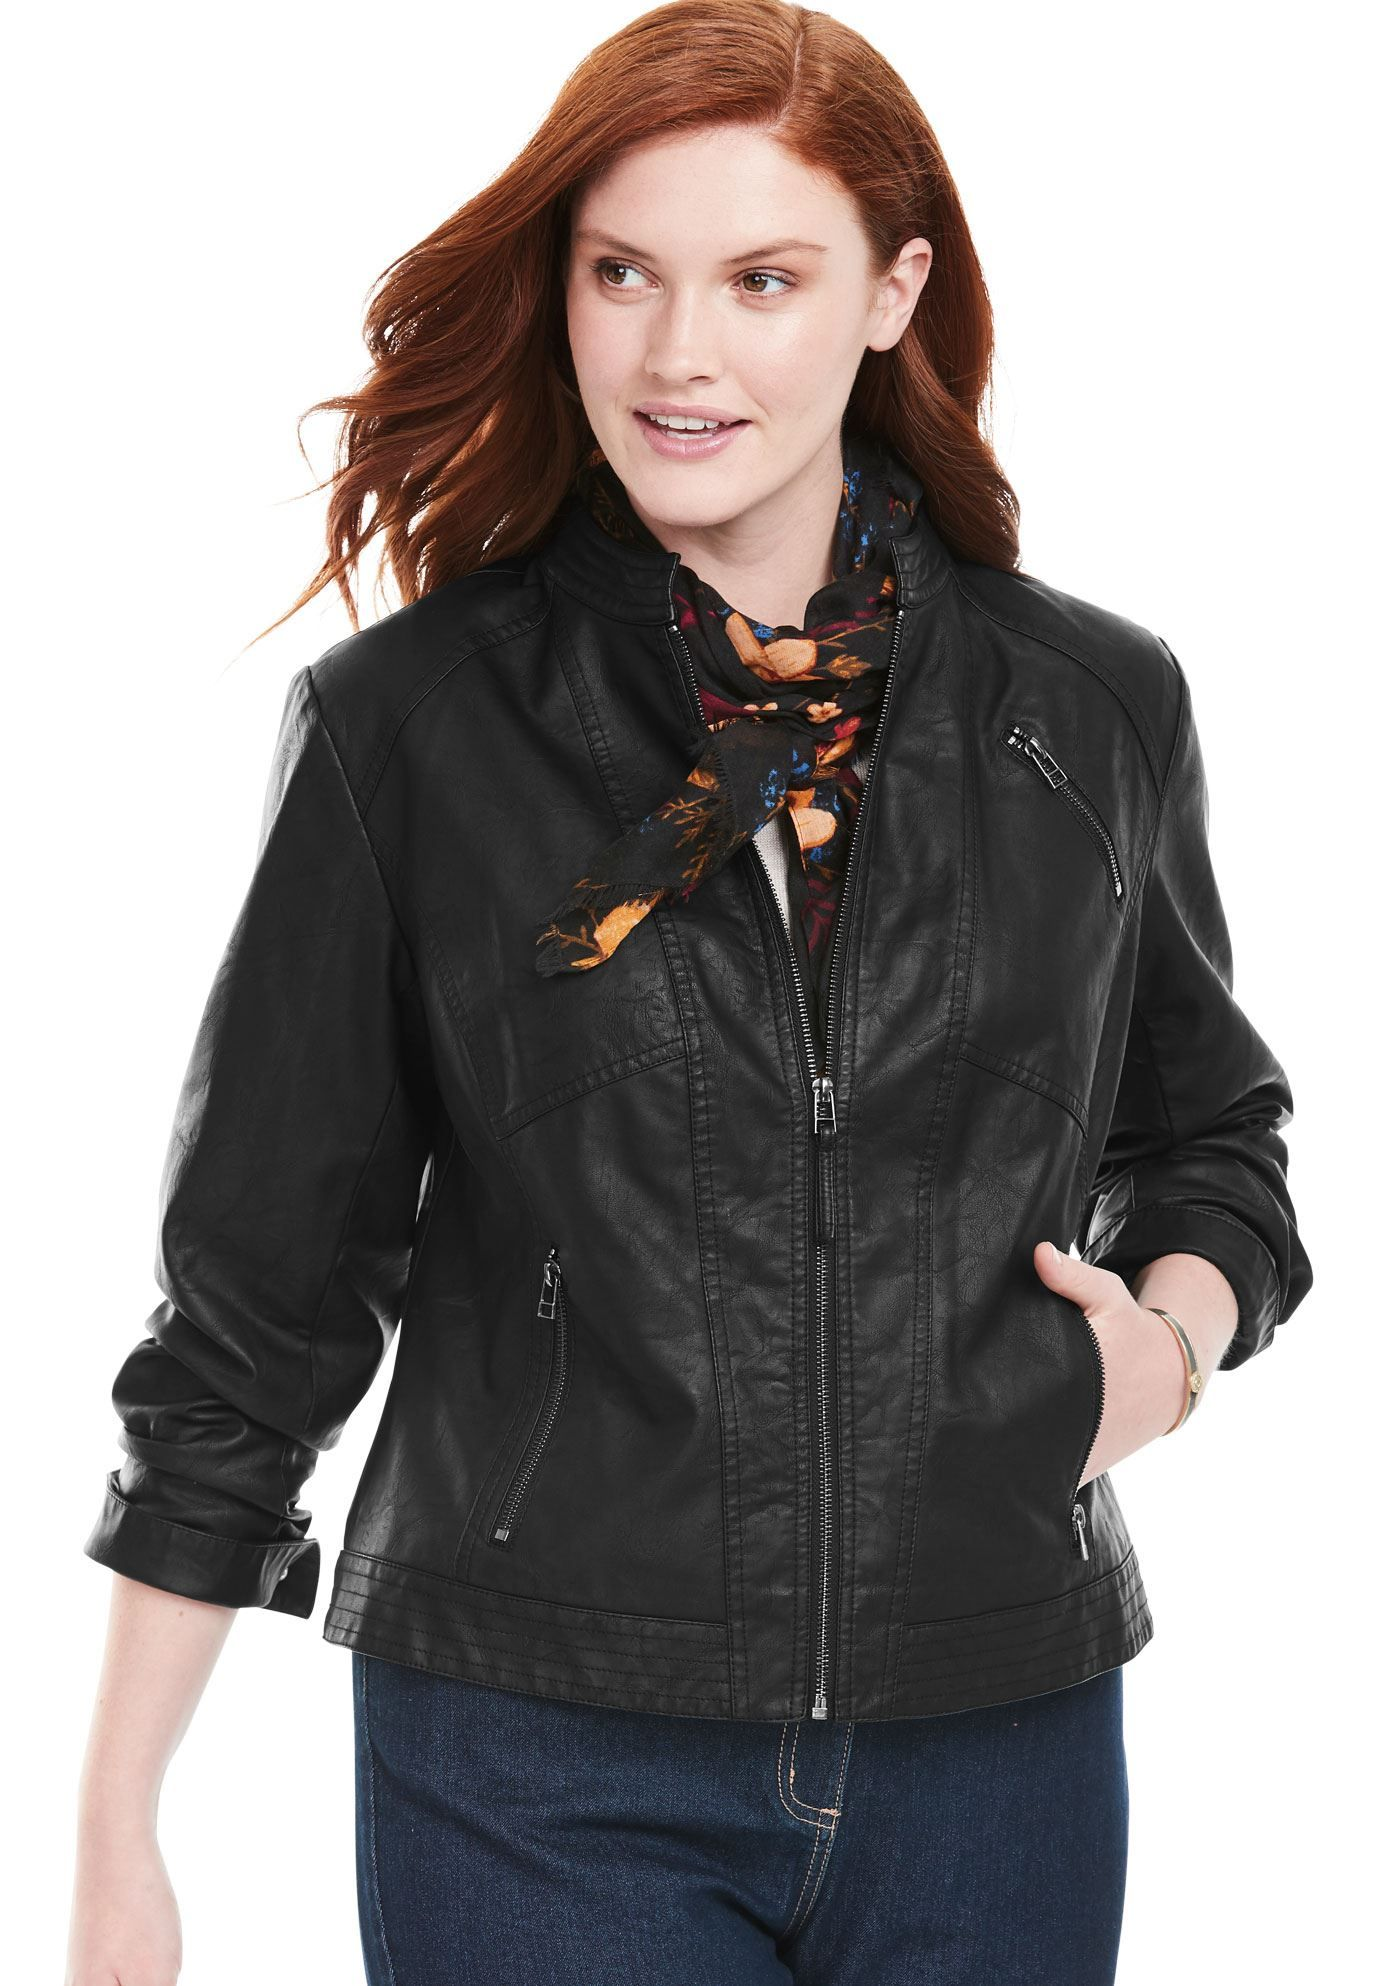 0506a3ab6b1 Zip-Front Faux Leather Jacket - Women s Plus Size Clothing ...